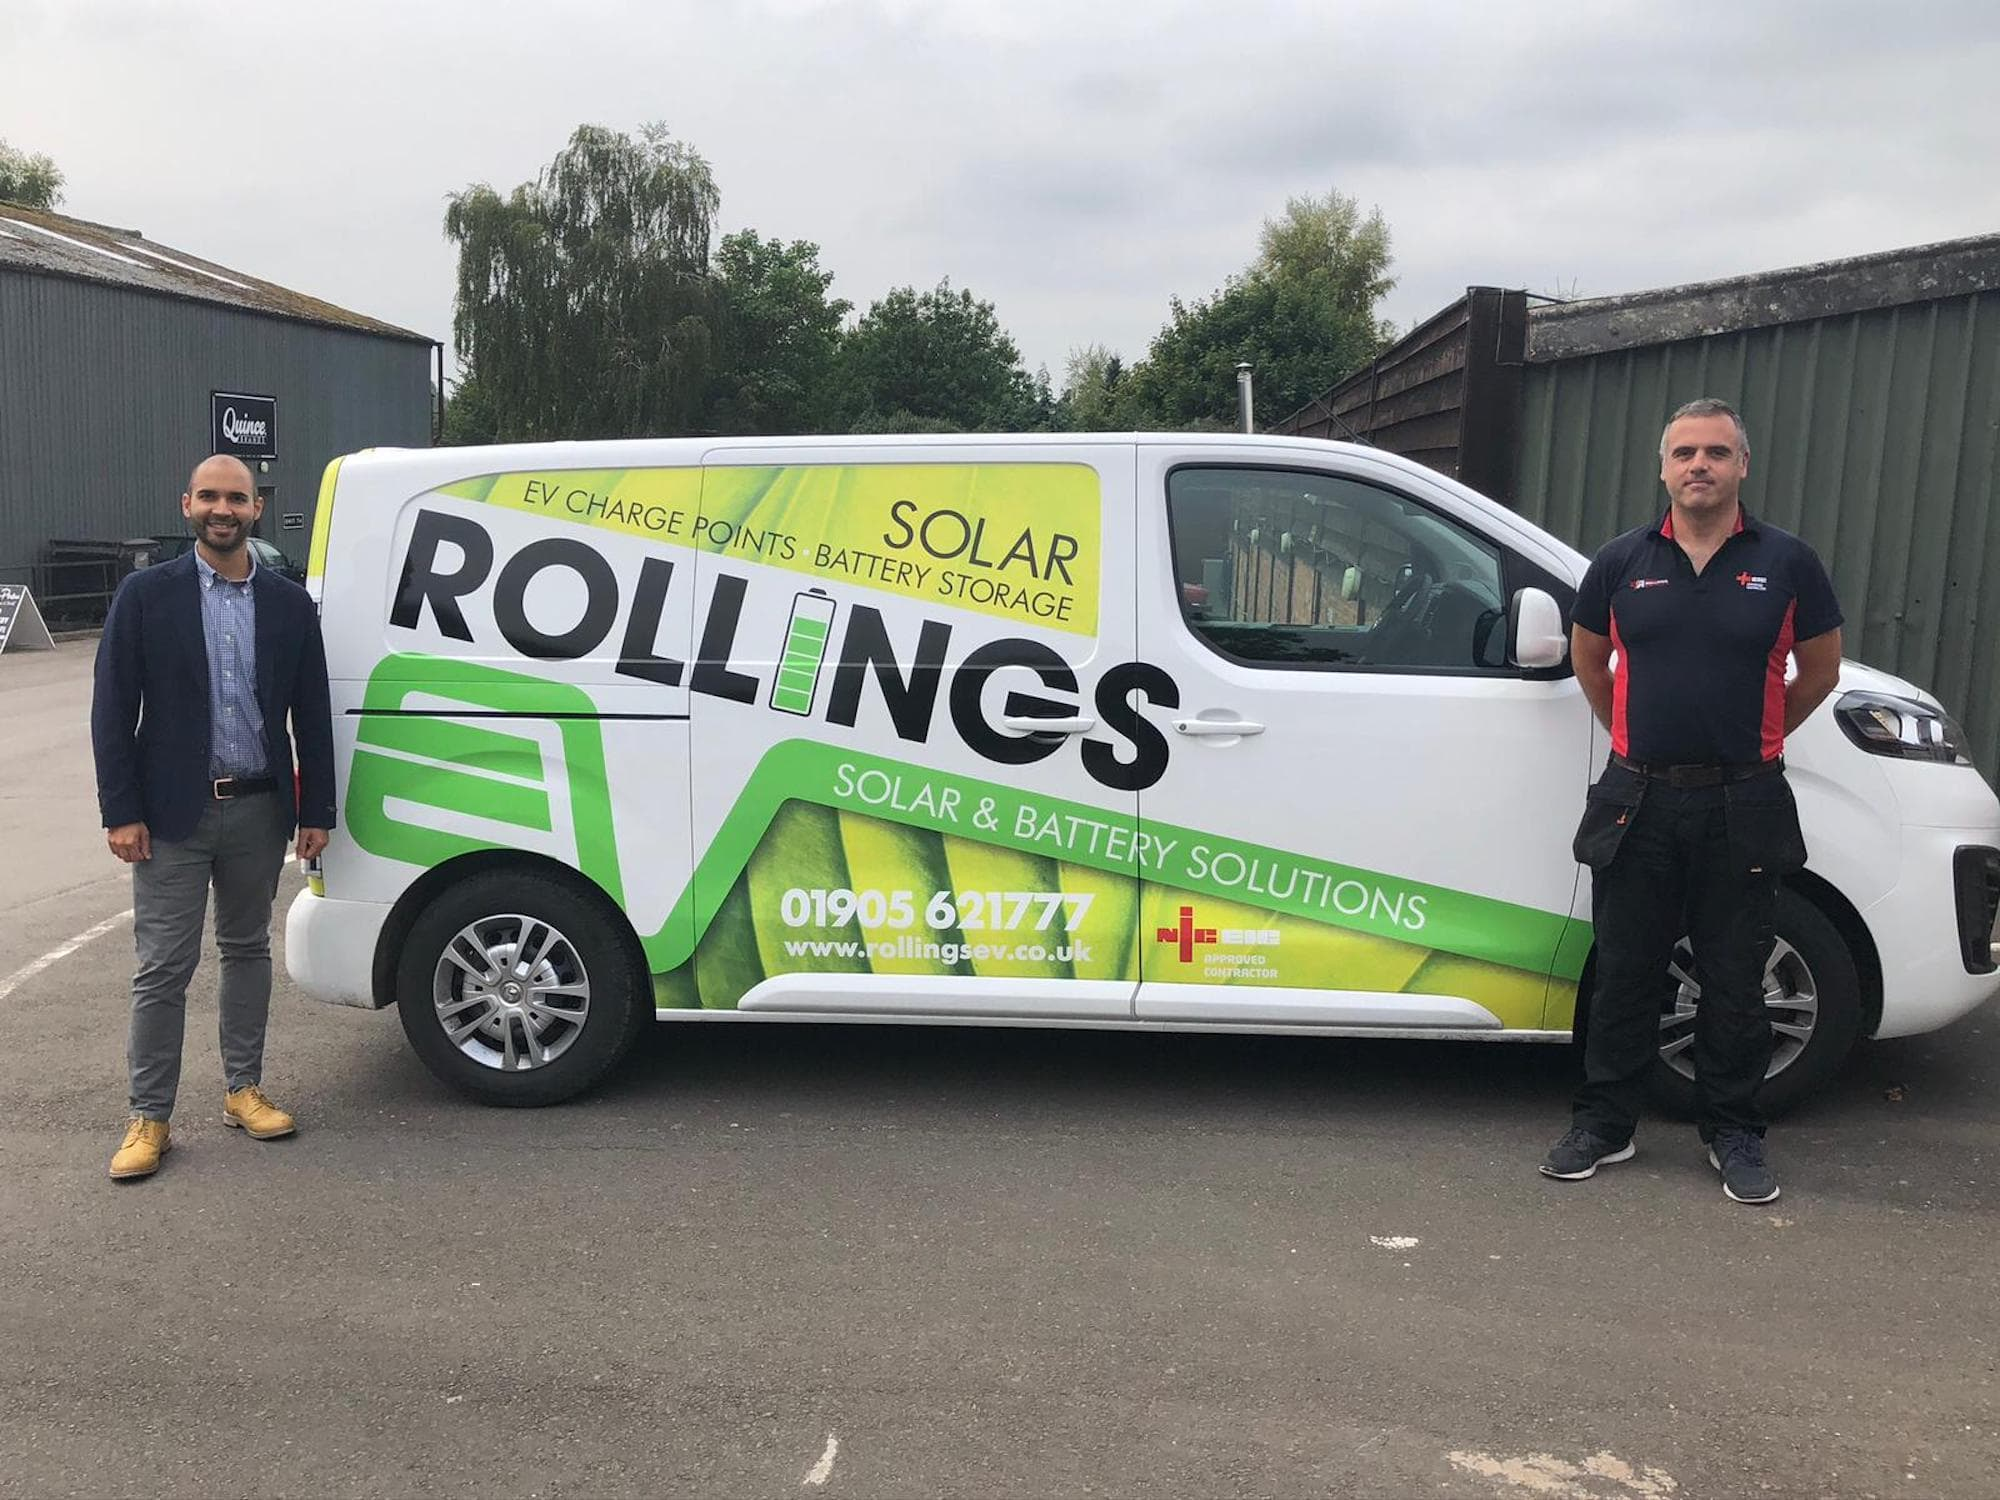 InvestGrow Financial Services partners with Rollings Electrical - InvestGrow Financial Services Ltd